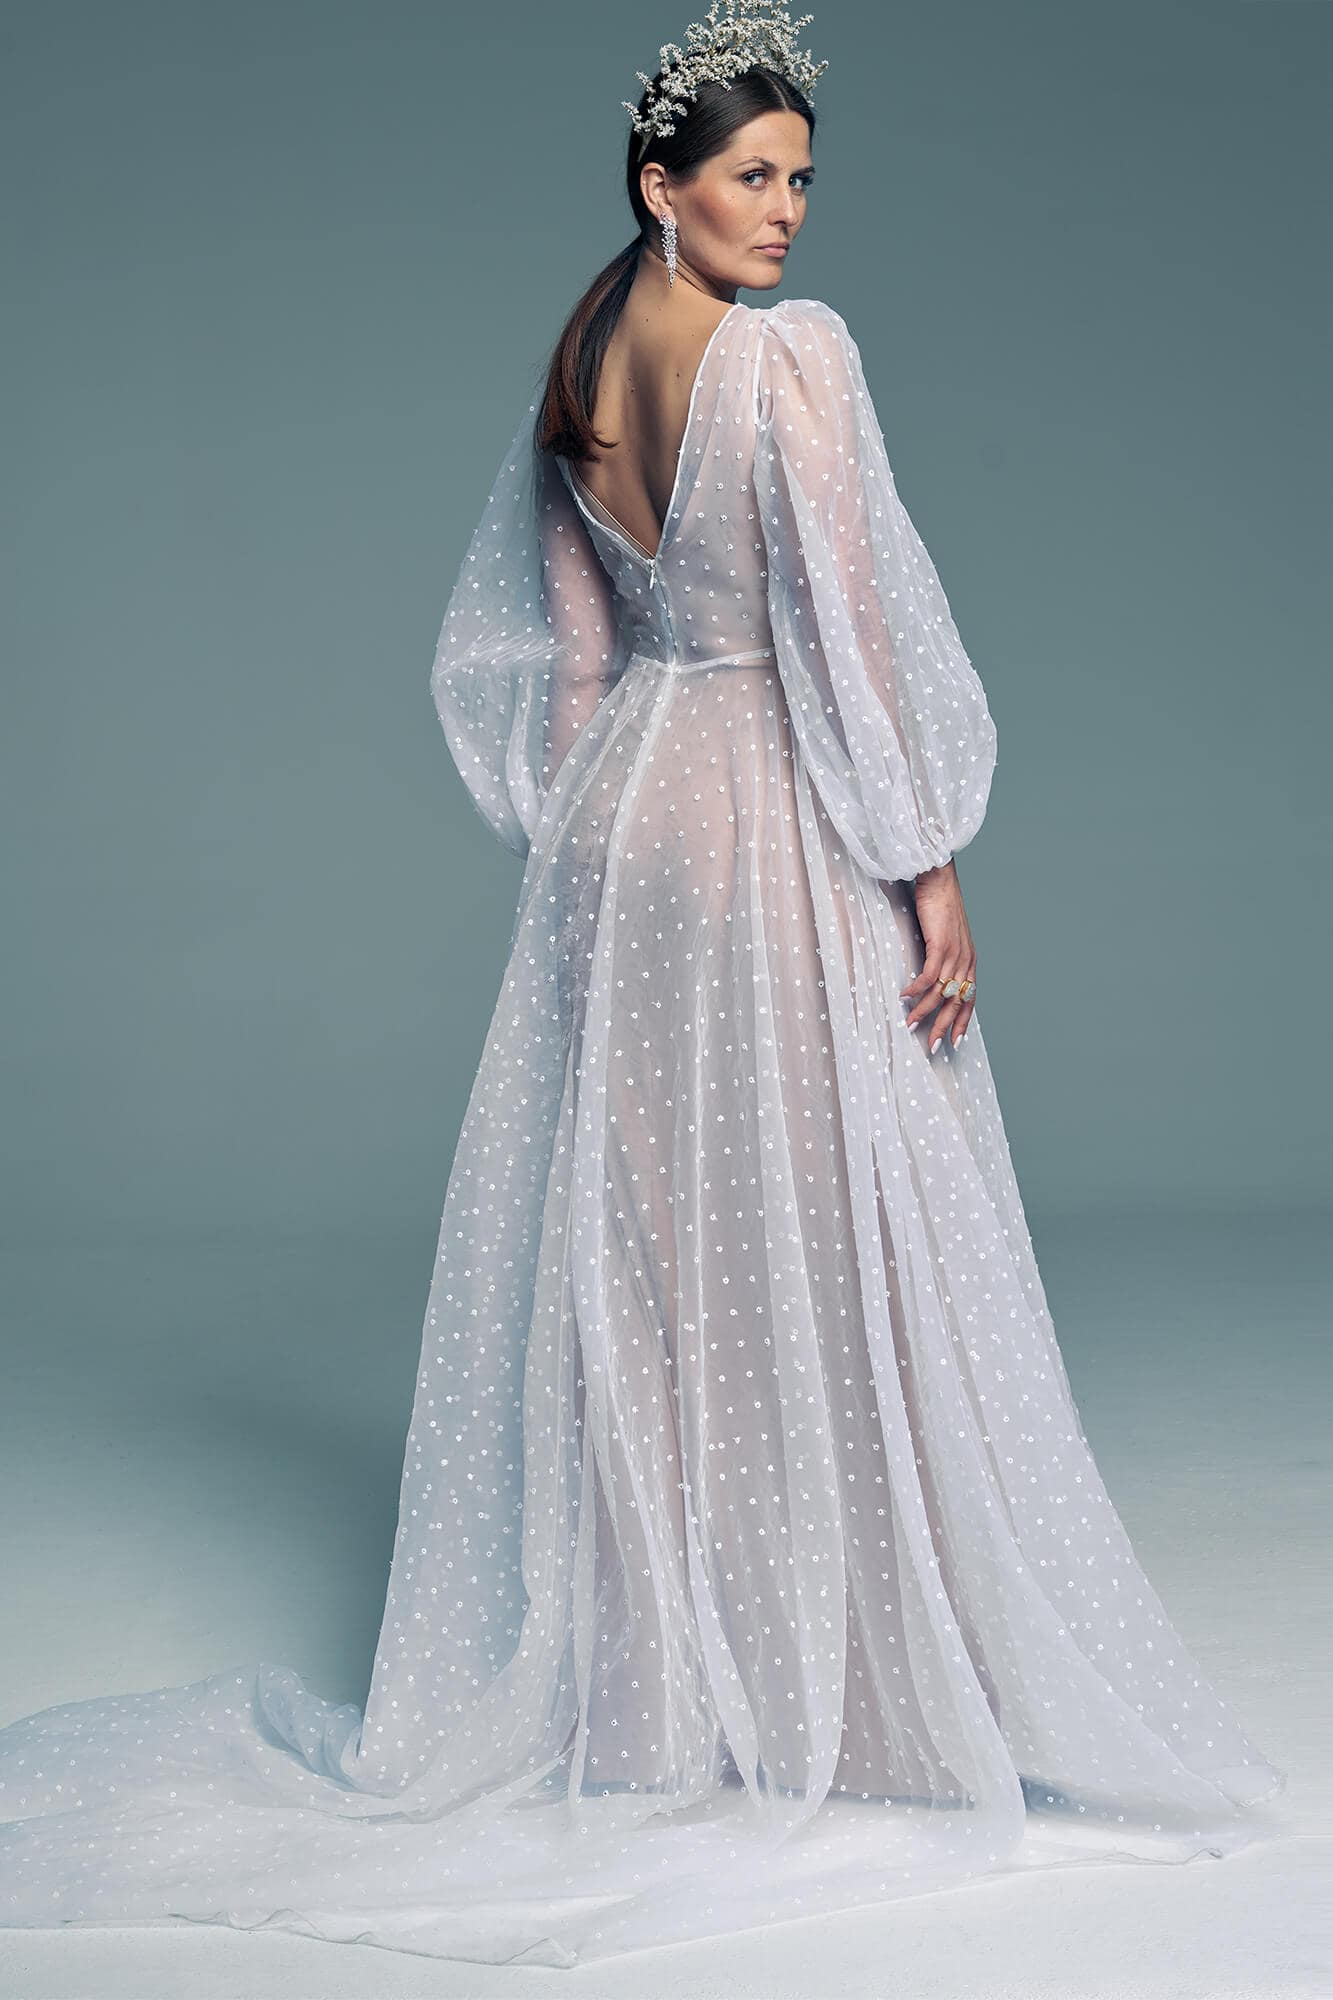 White wedding dress with puff sleeves. Barcelona 23